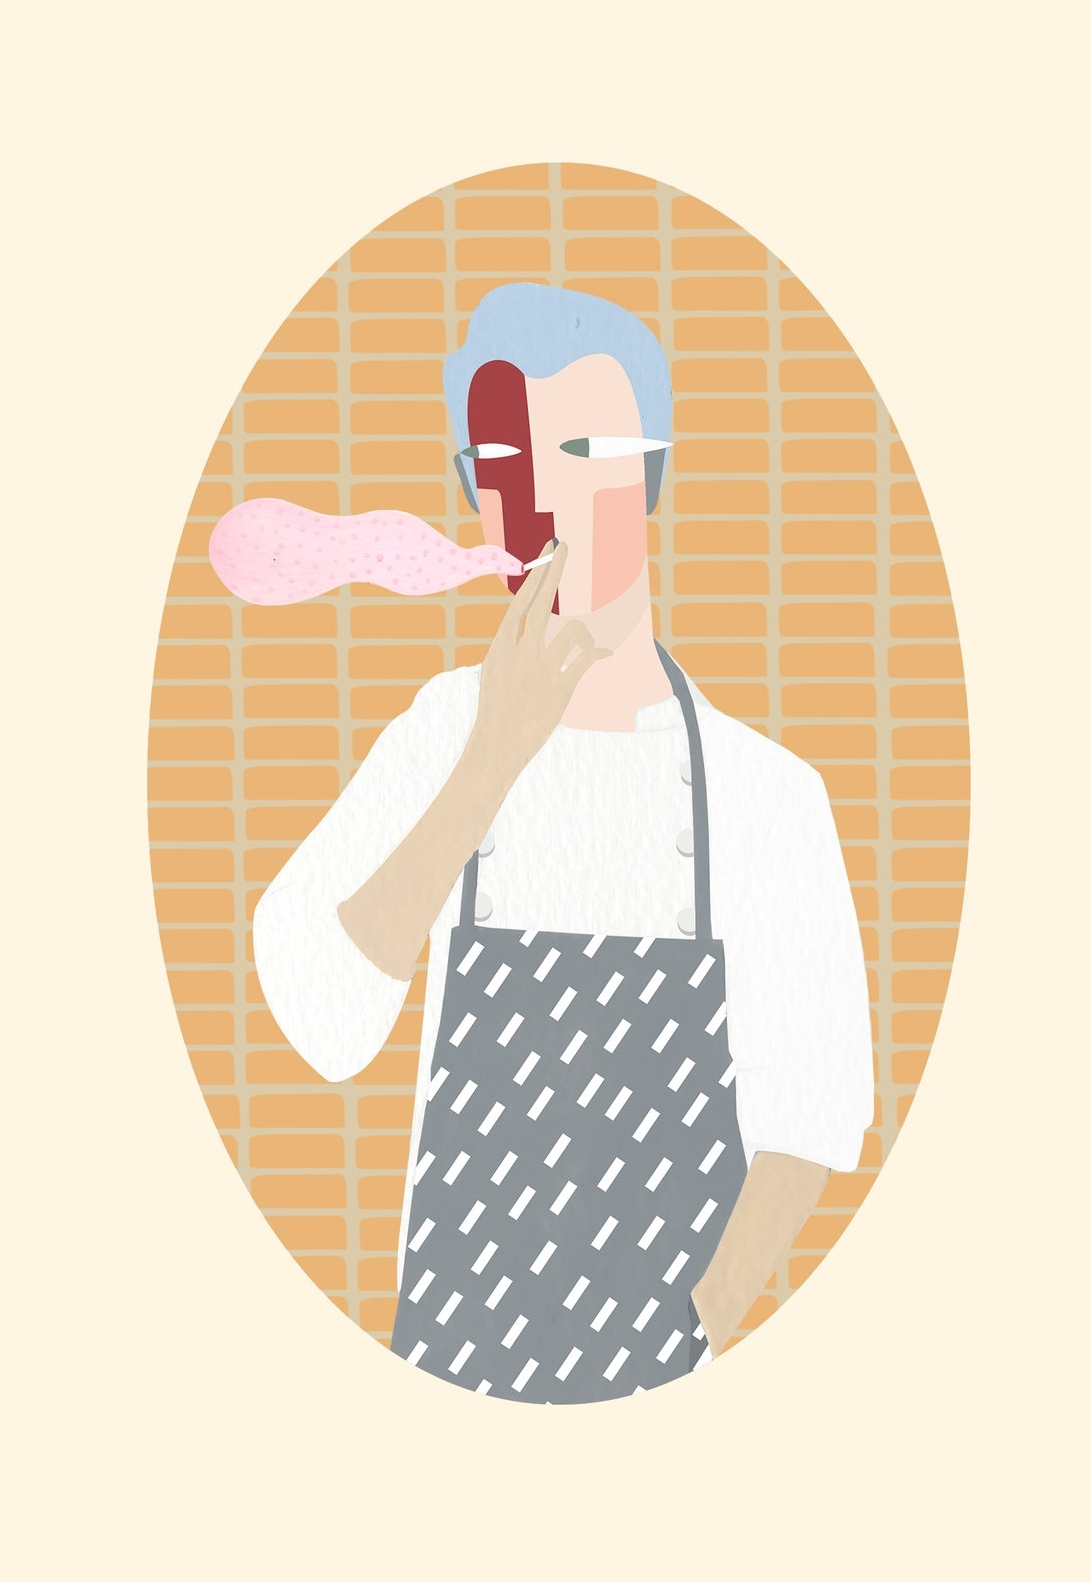 Portrait of a chef on a cigarette break. Brooklyn miniatures. Ongoing illustrated series of regular people, inspired by Deccan miniature portraits of nobles